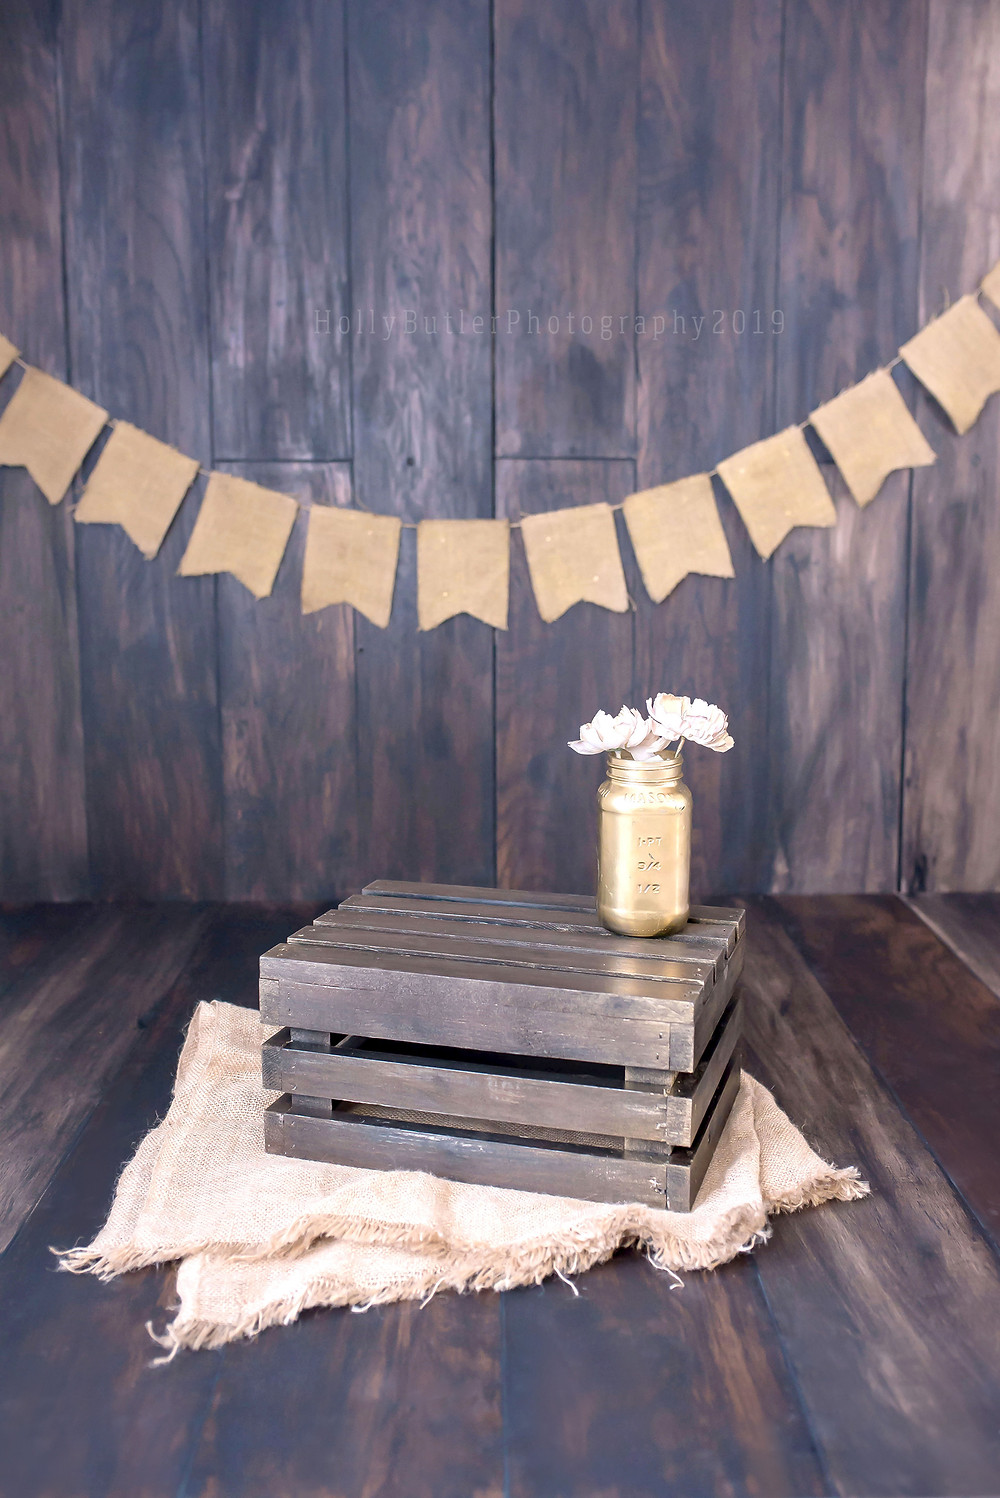 DIY Laminate Wooden Backdrop With Reduced Shine | Holly Butler Photography